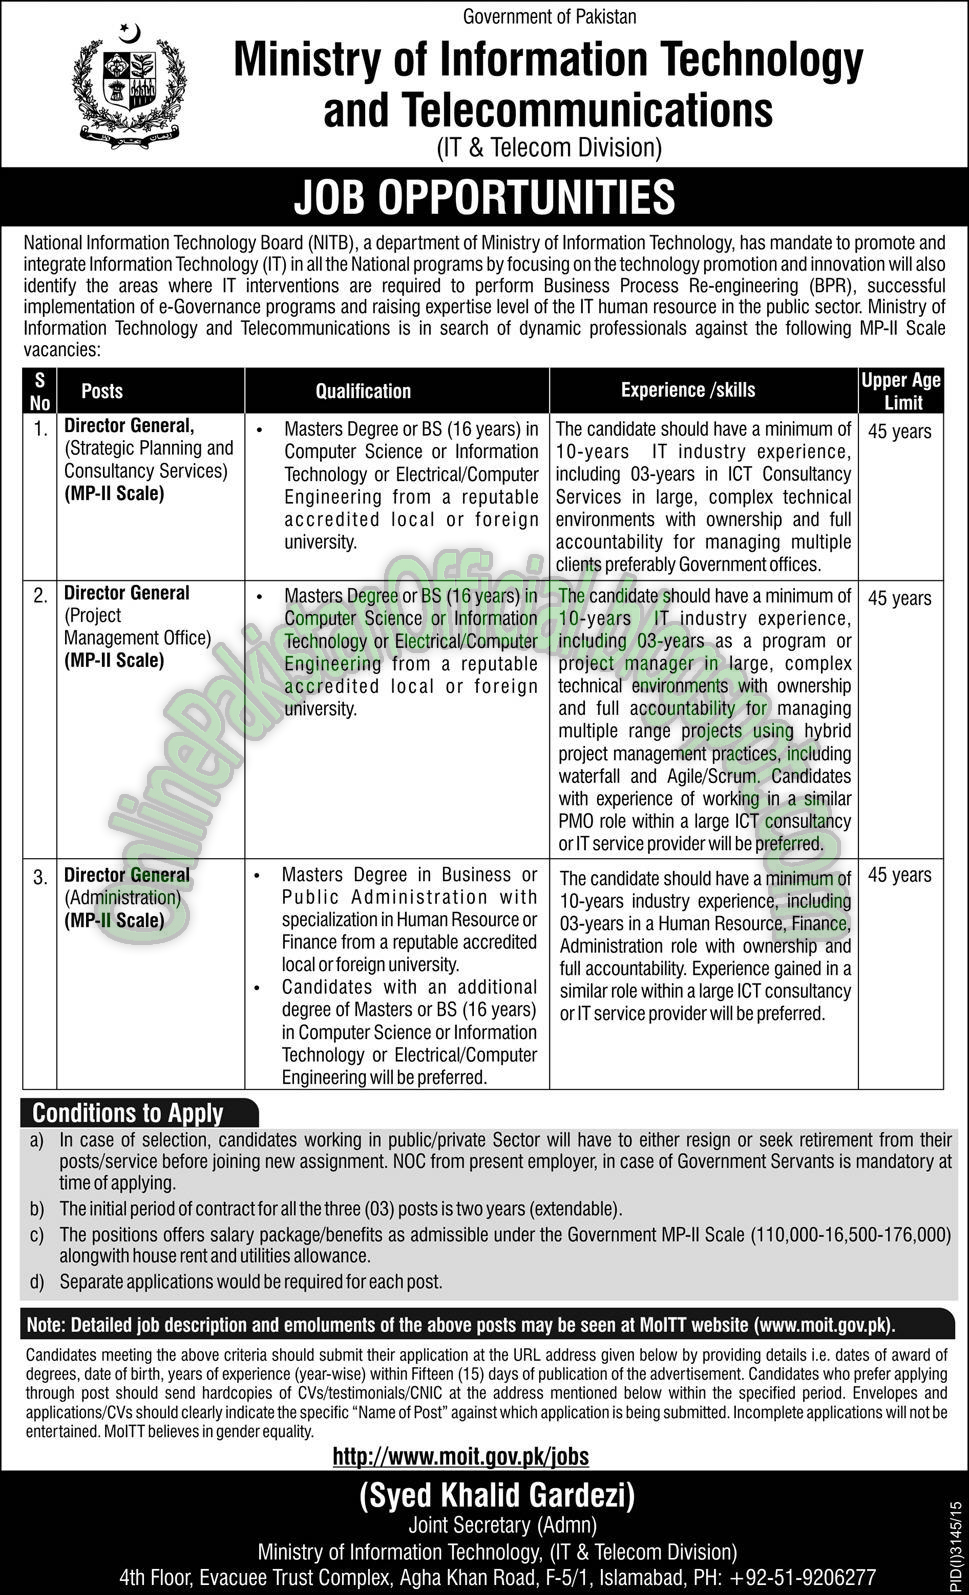 Ministry of Information Technology And Telecommunications latest jobs